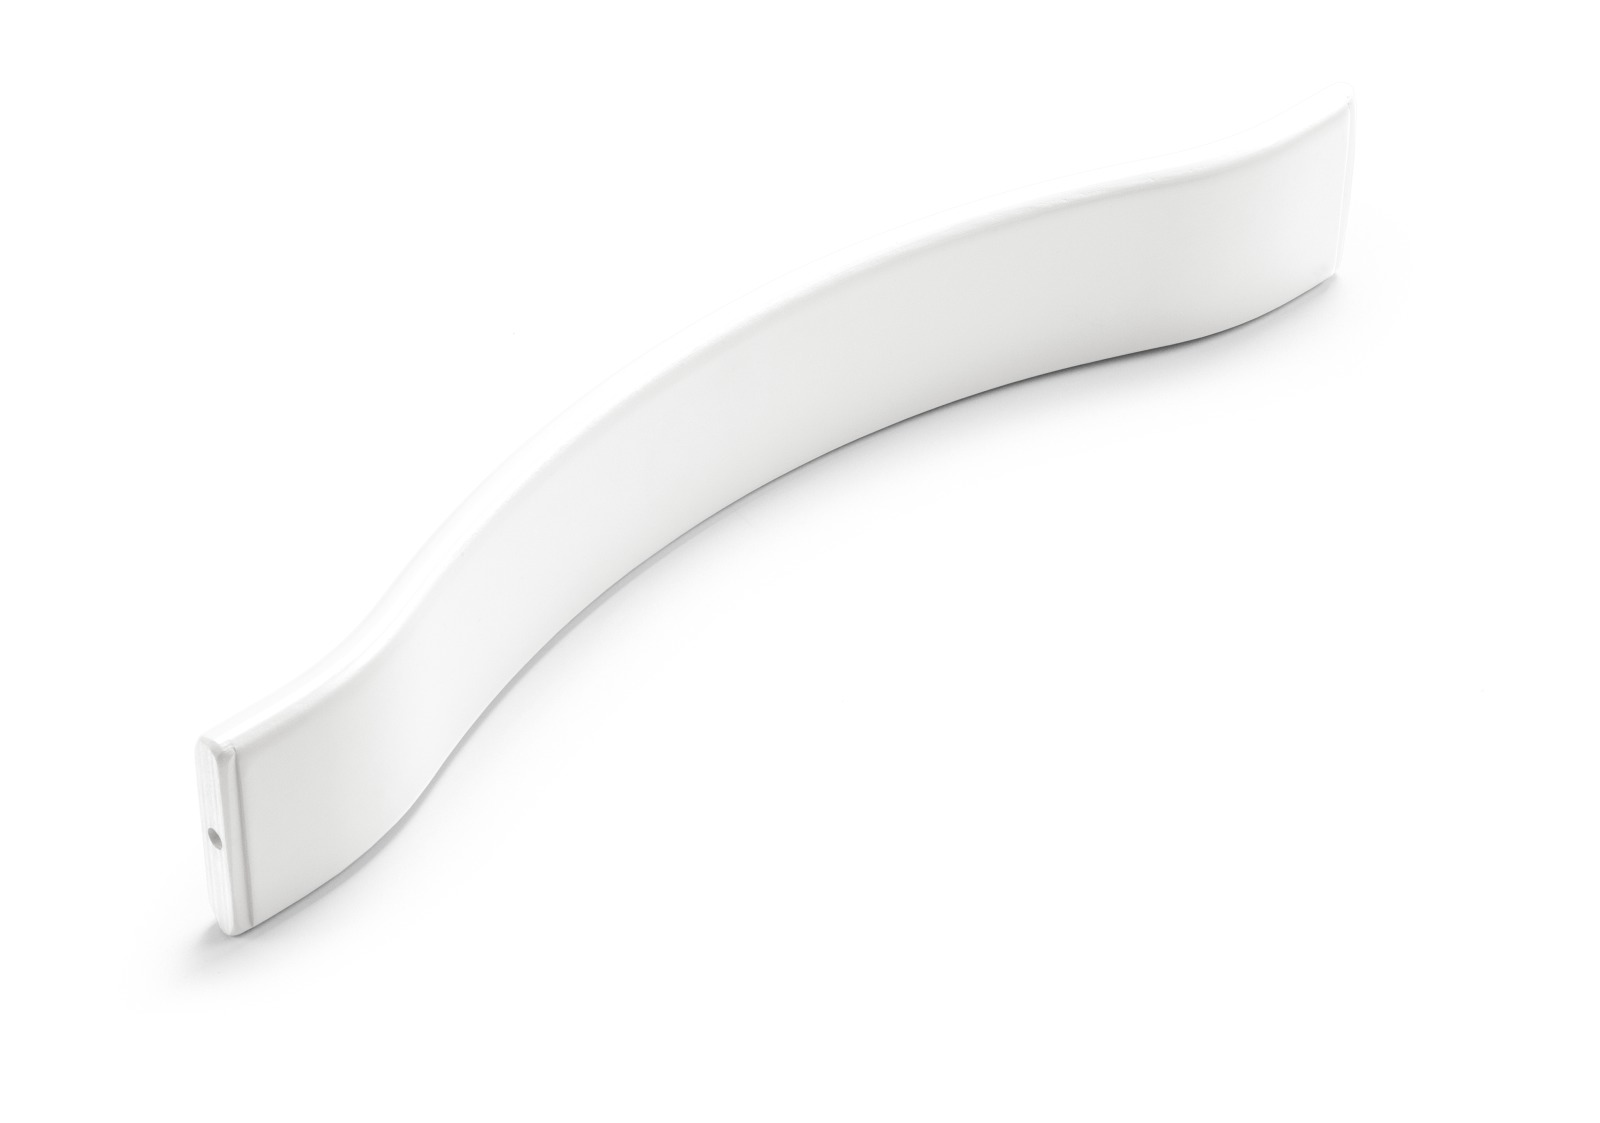 108707 Tripp Trapp Back laminate White (Spare part).